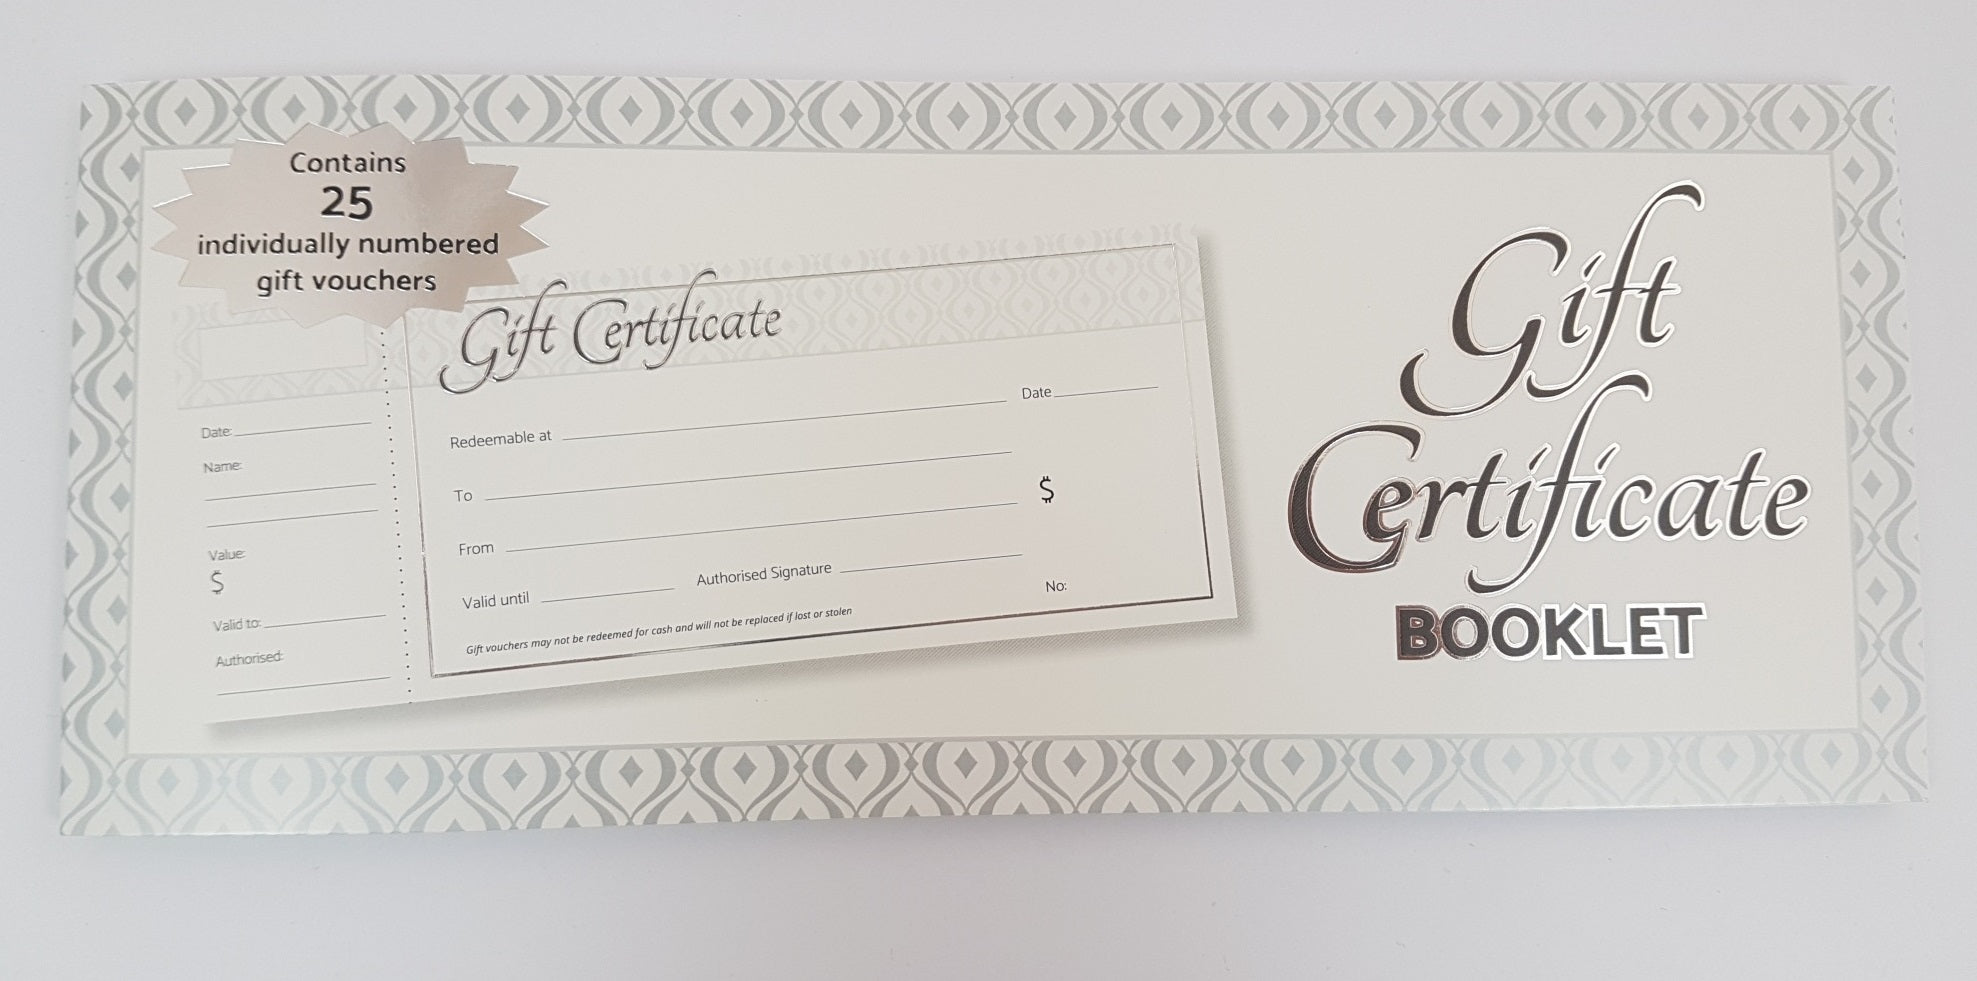 Gift Certificate Booklet of 25